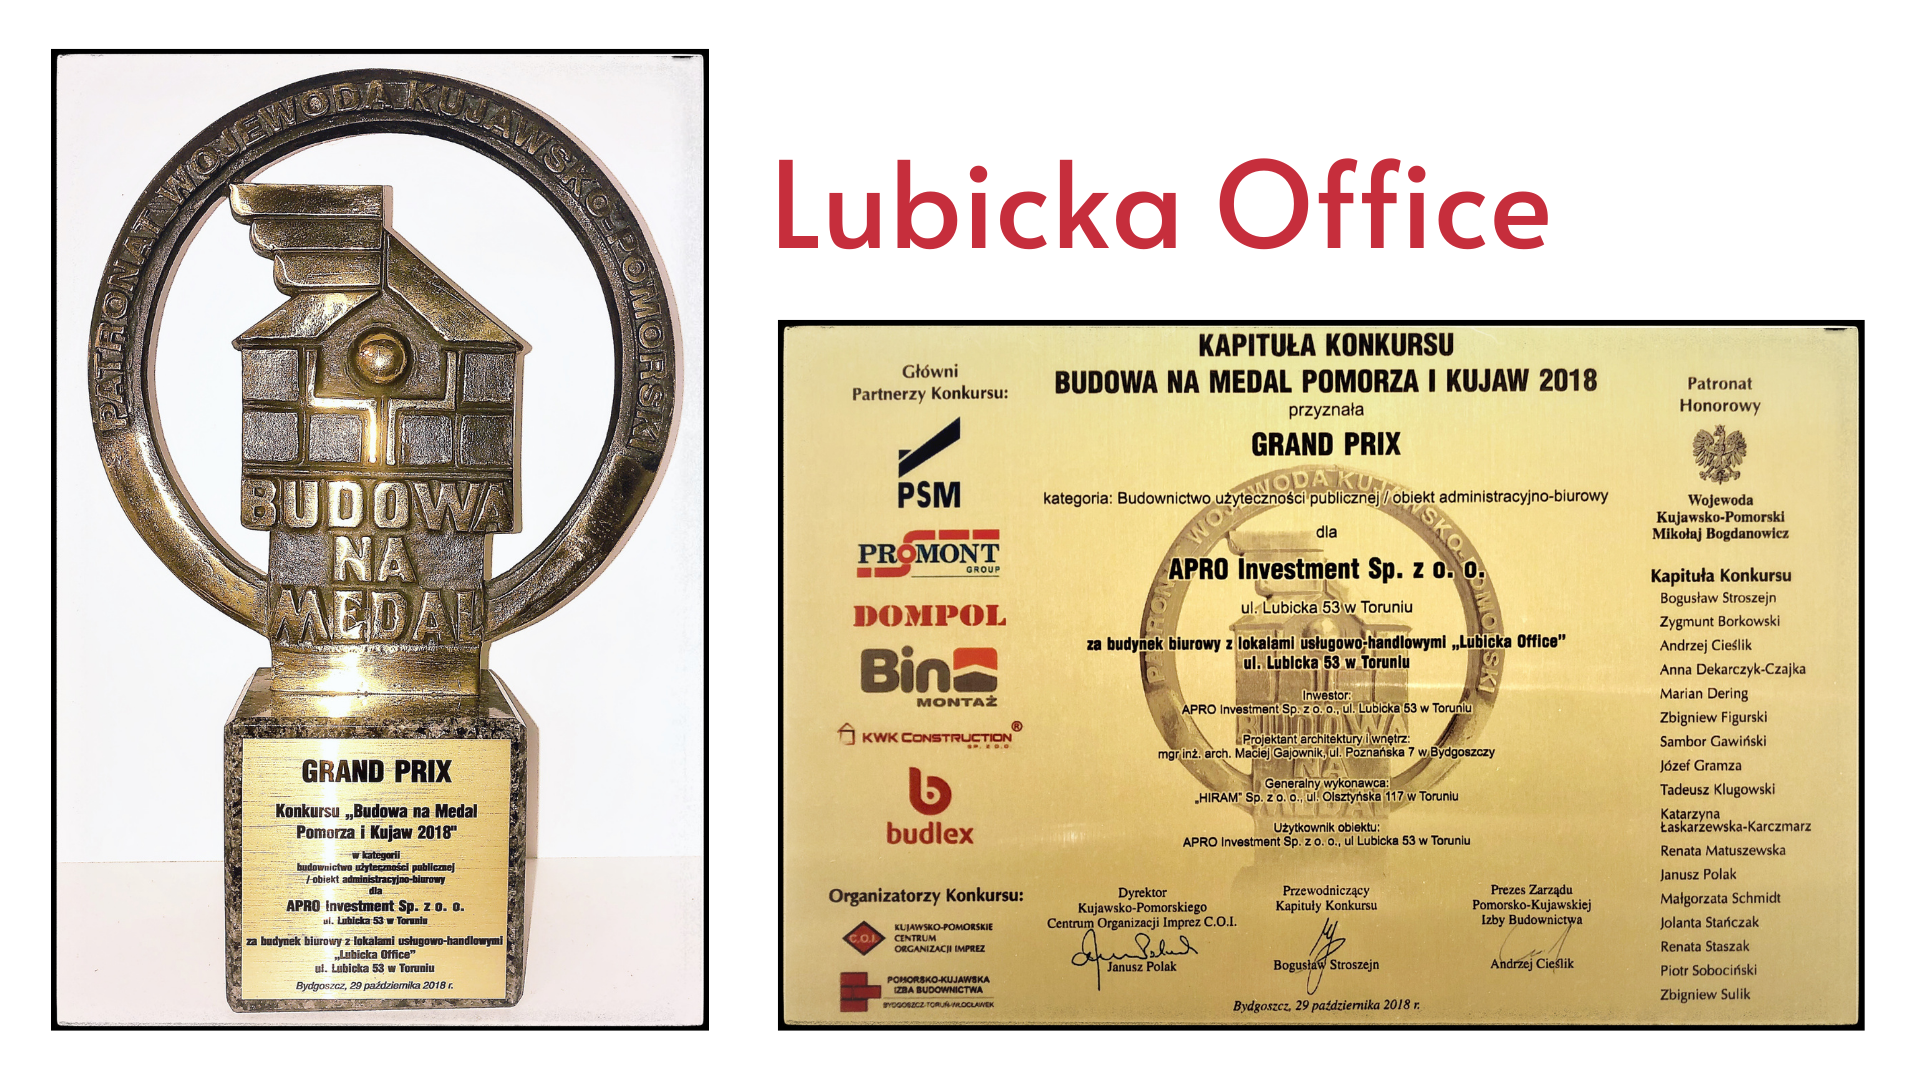 Lubicka Office Apro Investment